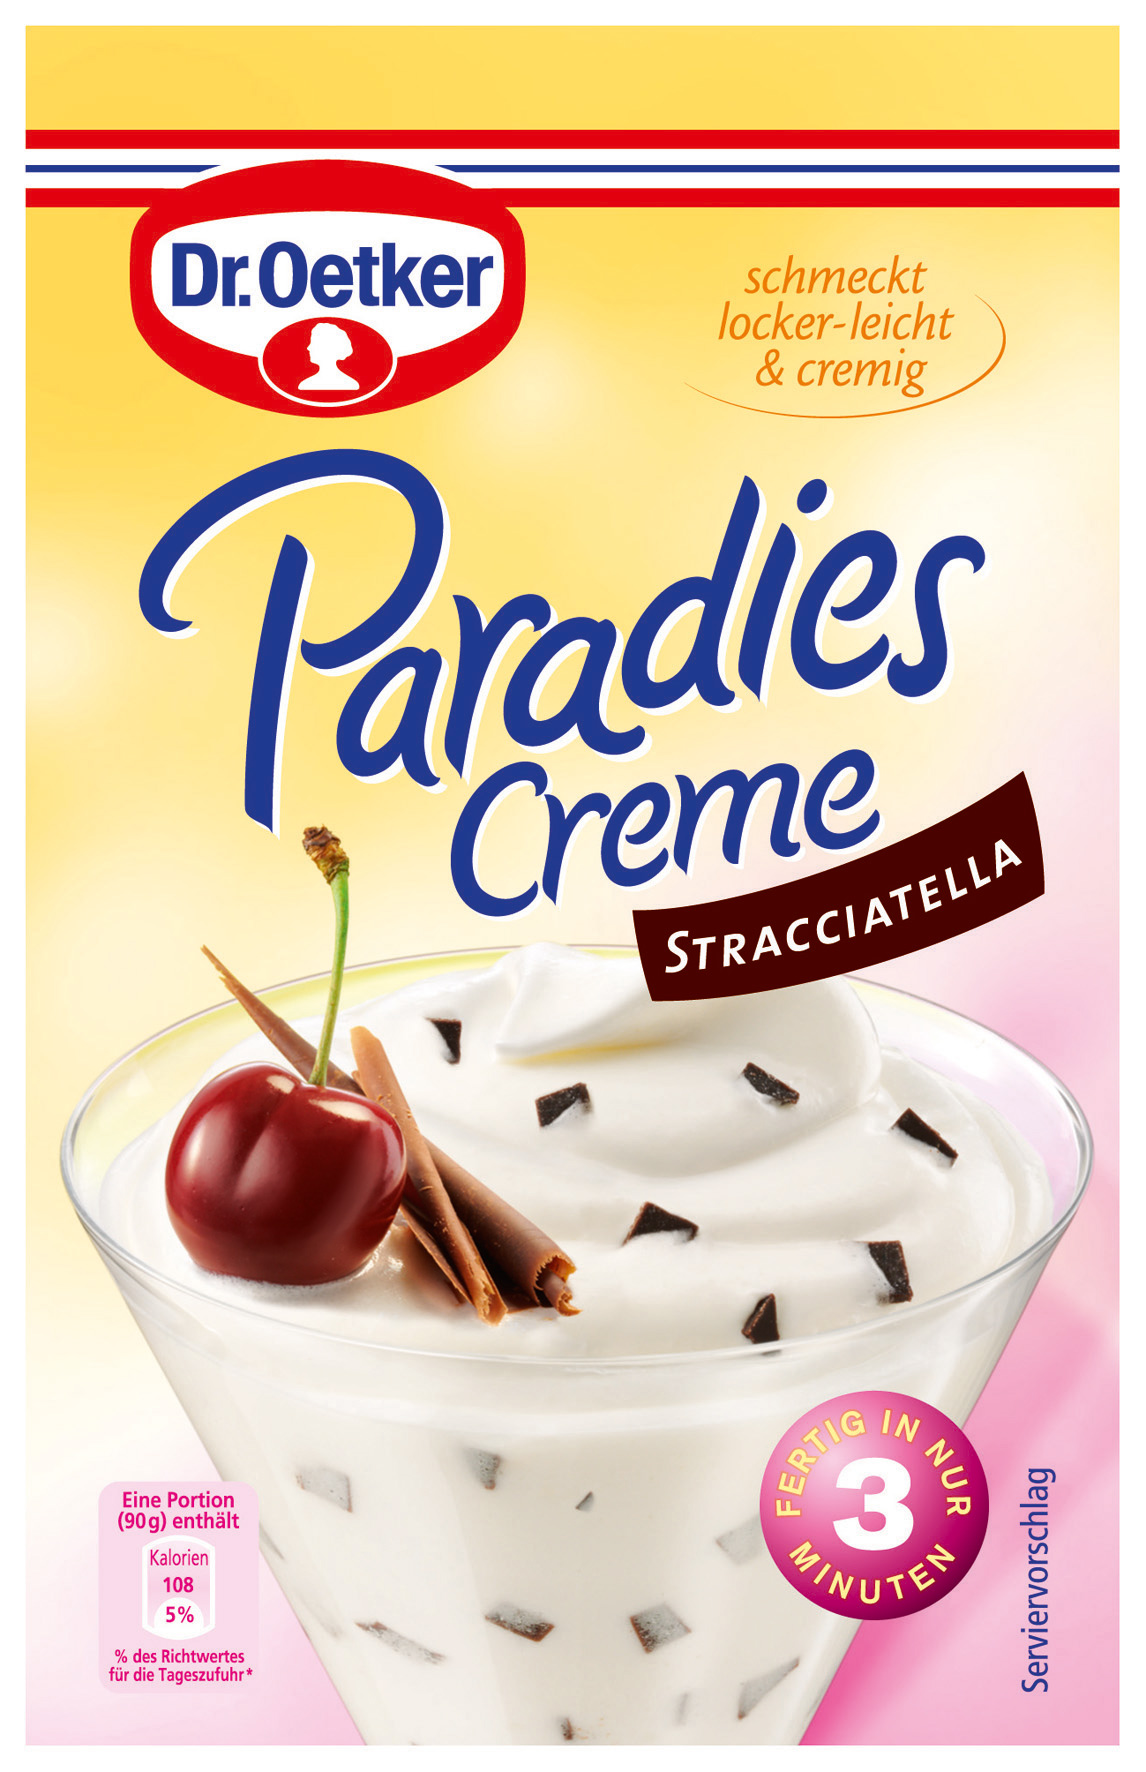 dr oetker paradiescreme stracciatella dessert 66g online kaufen bei lieferello. Black Bedroom Furniture Sets. Home Design Ideas